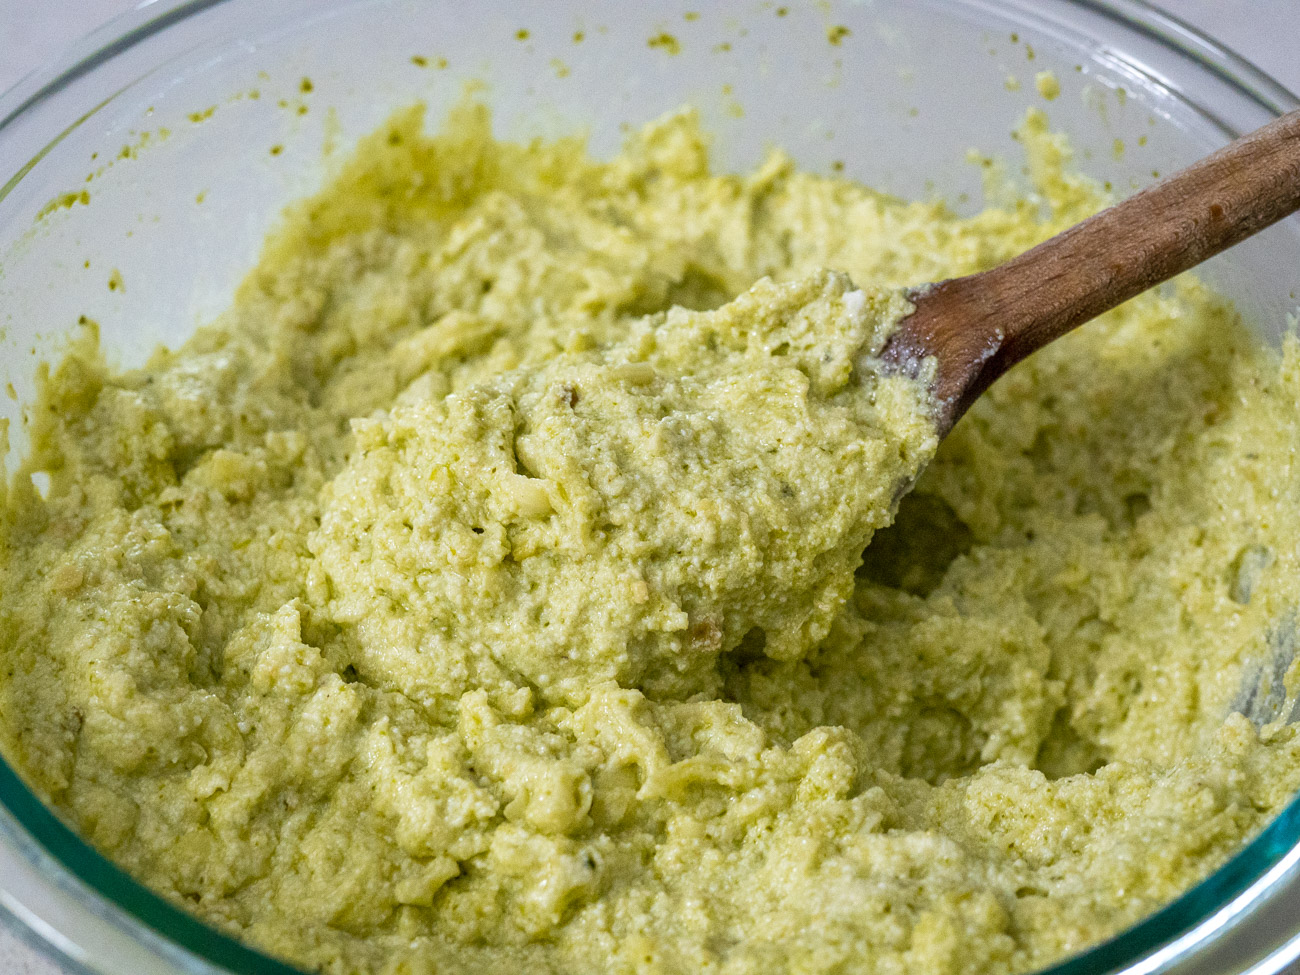 Combine ricotta, fontina, and 1/2 cup pesto in a medium bowl.